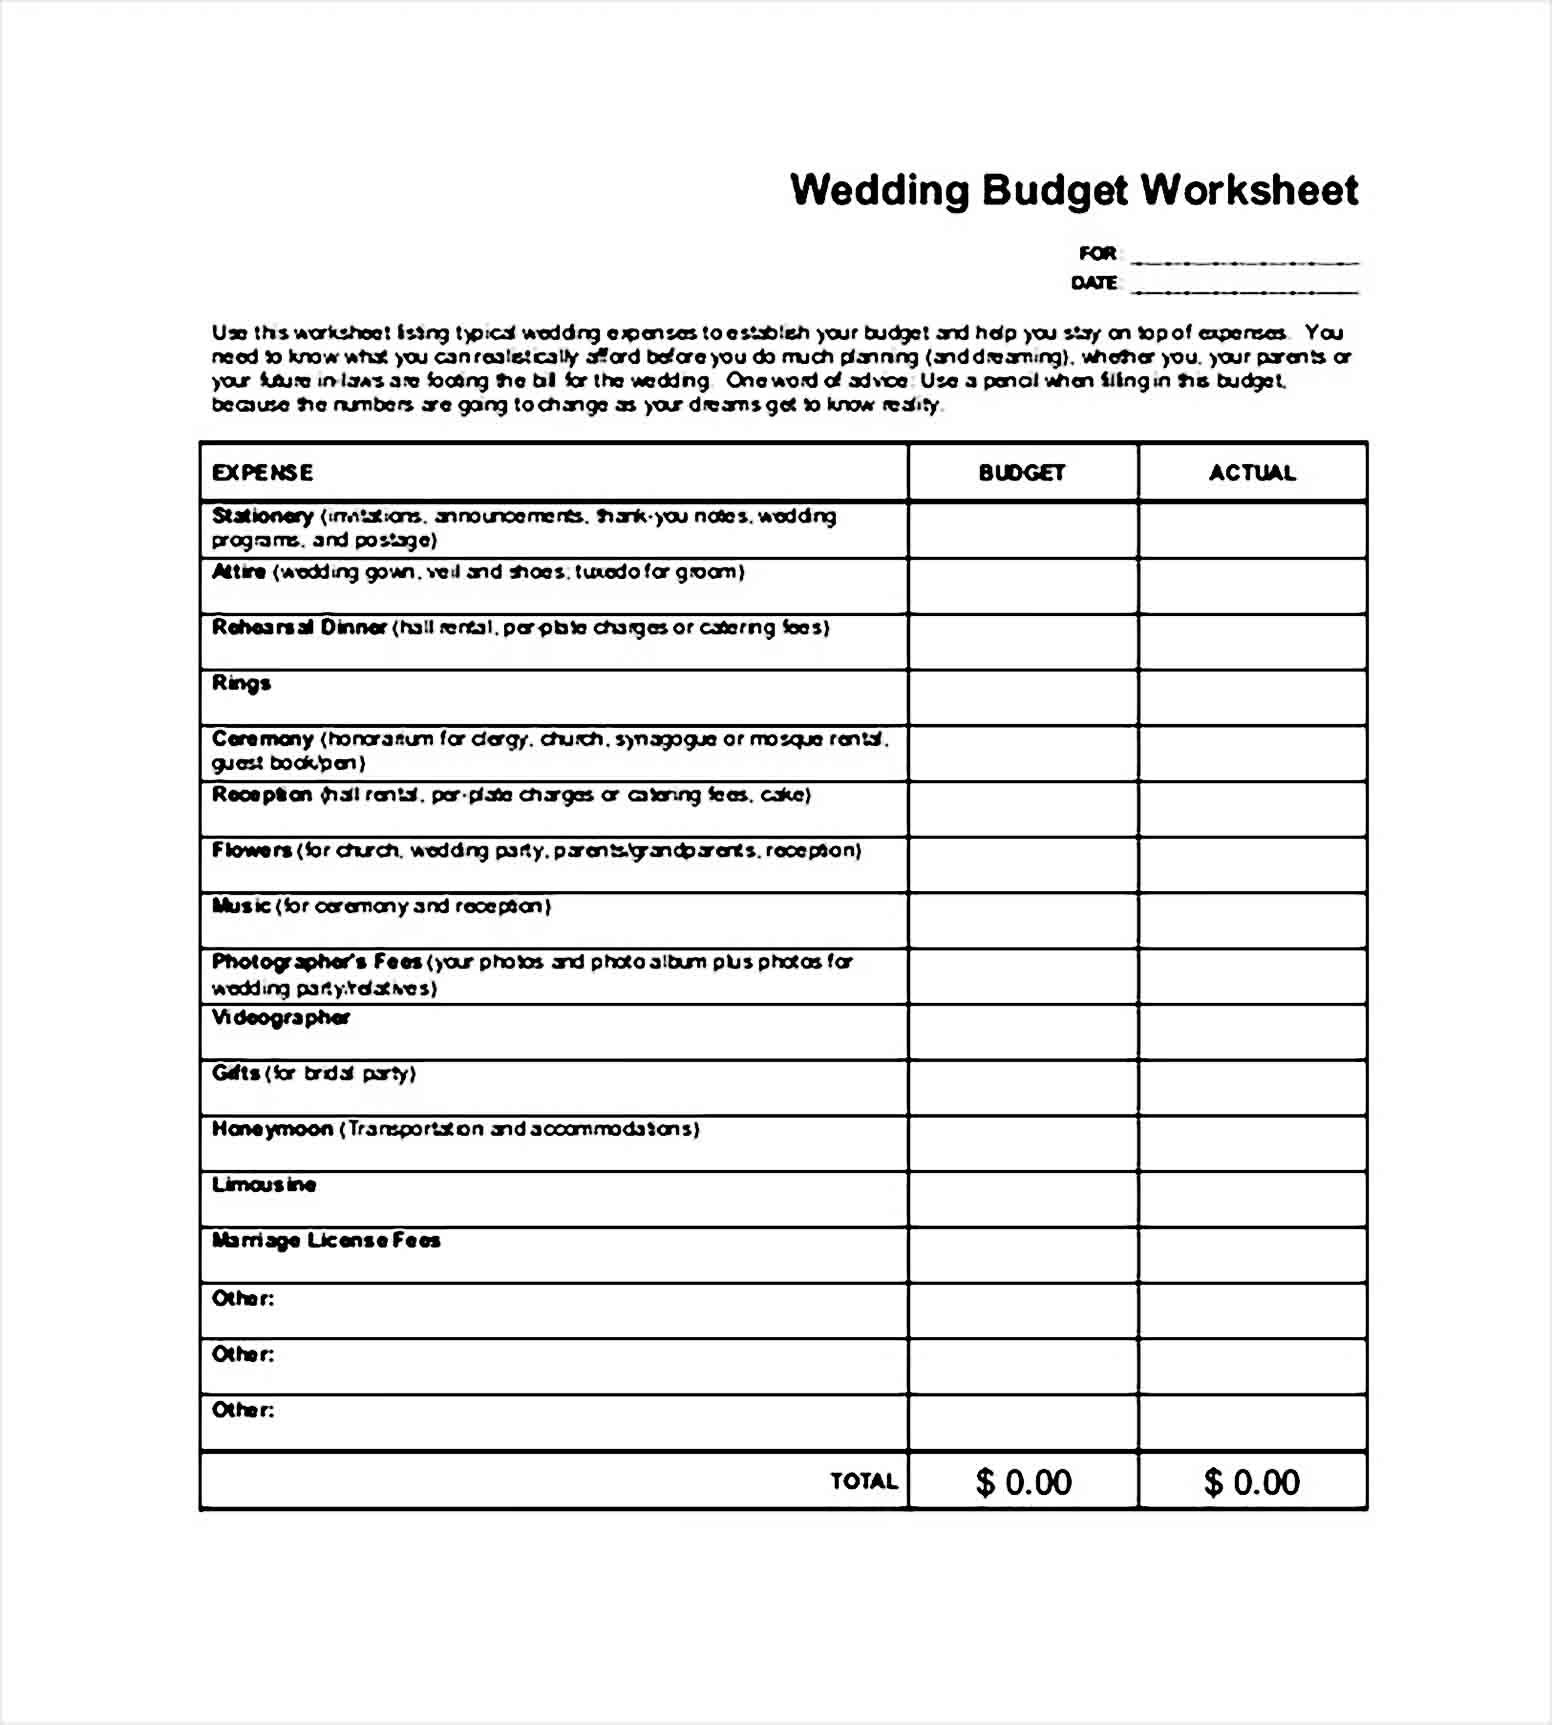 Sample Wedding Budget In 2020 Budget Wedding Budgeting Wedding Budget Worksheet